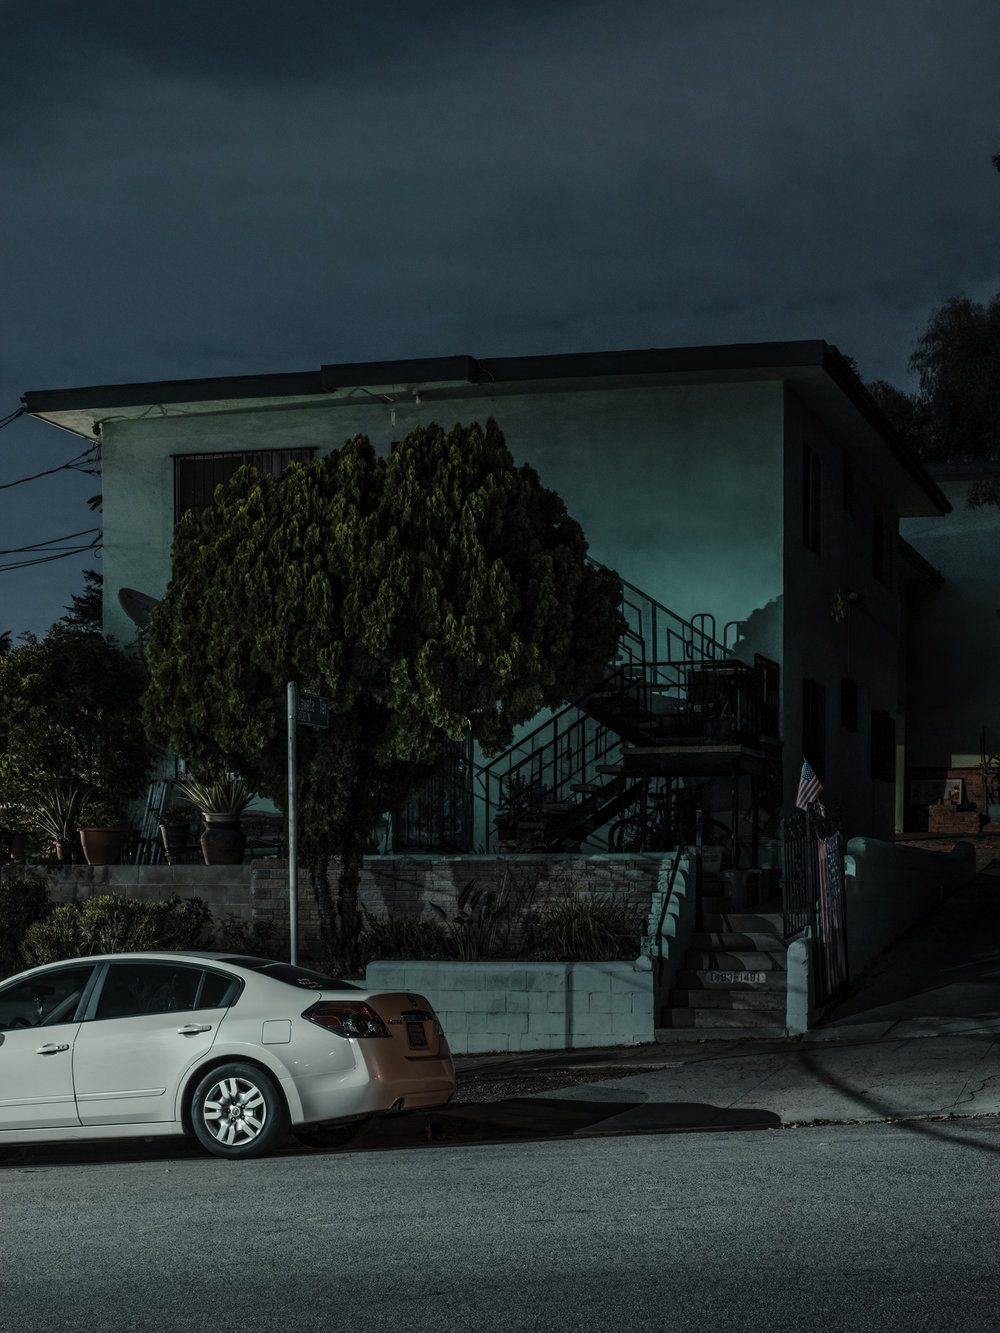 "House on Levetta and Scott, Los Angeles, 2018.  24"" x 18"", Limited Edition of 5. Archival Pigment Print, Hahnemuhle Fine Art Paper.   Pricing & Purchasing Info"